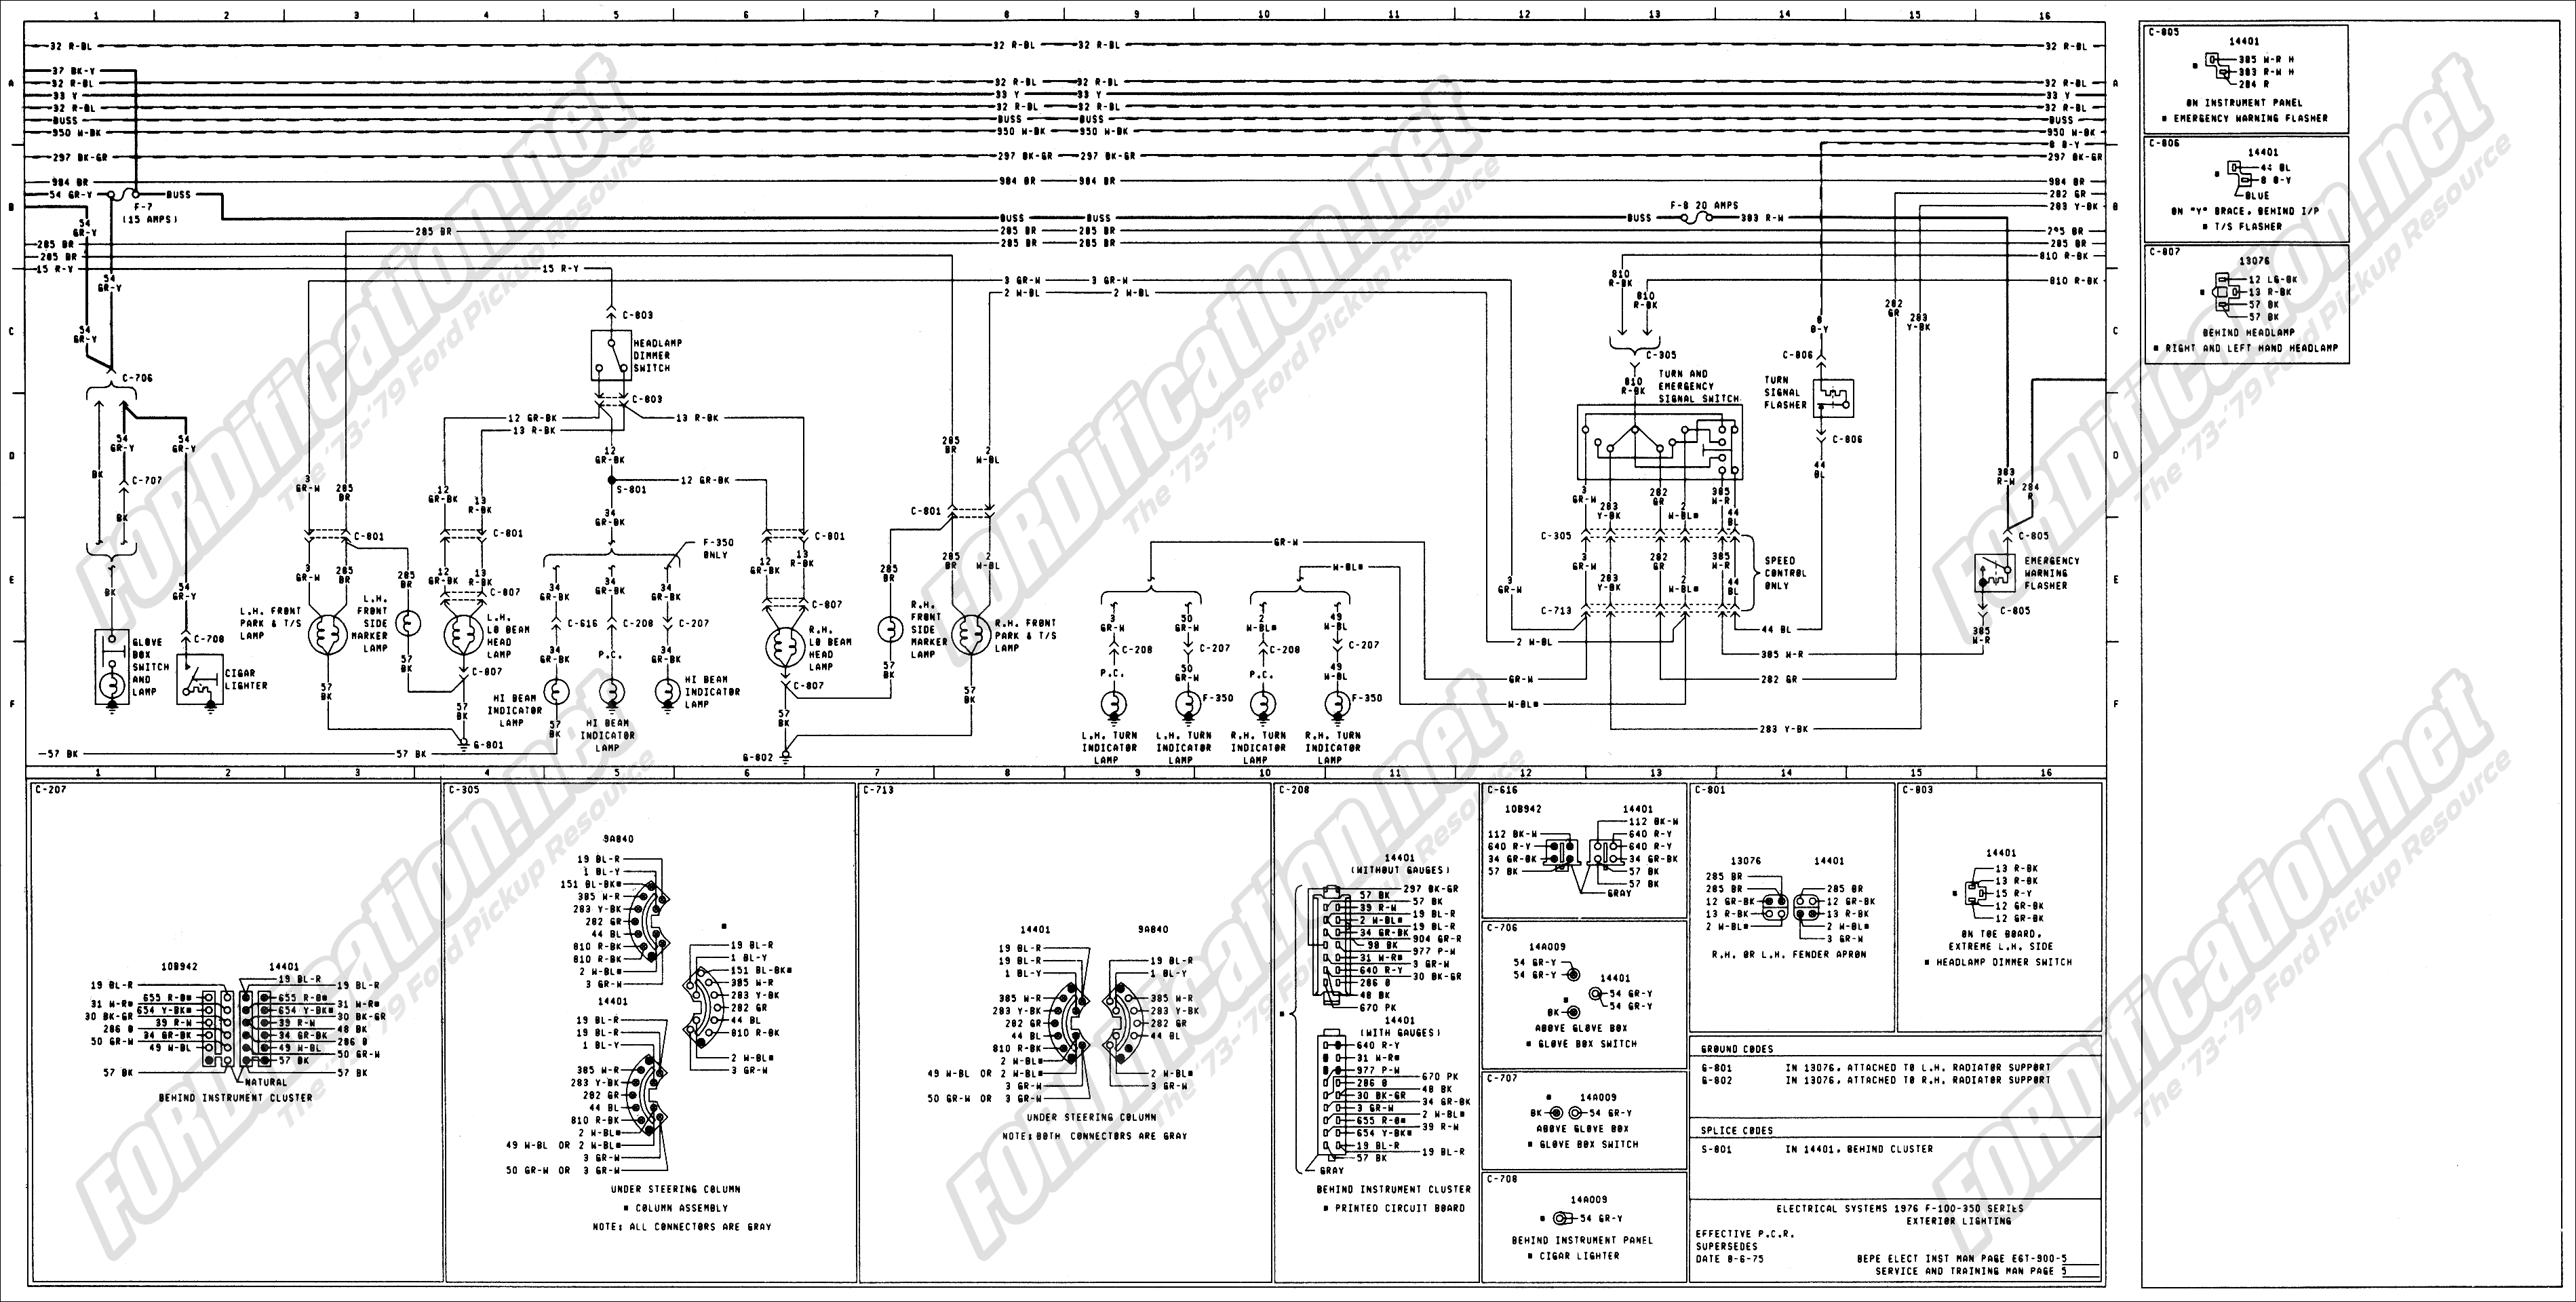 wiring_76master_5of9 1973 1979 ford truck wiring diagrams & schematics fordification net  at crackthecode.co